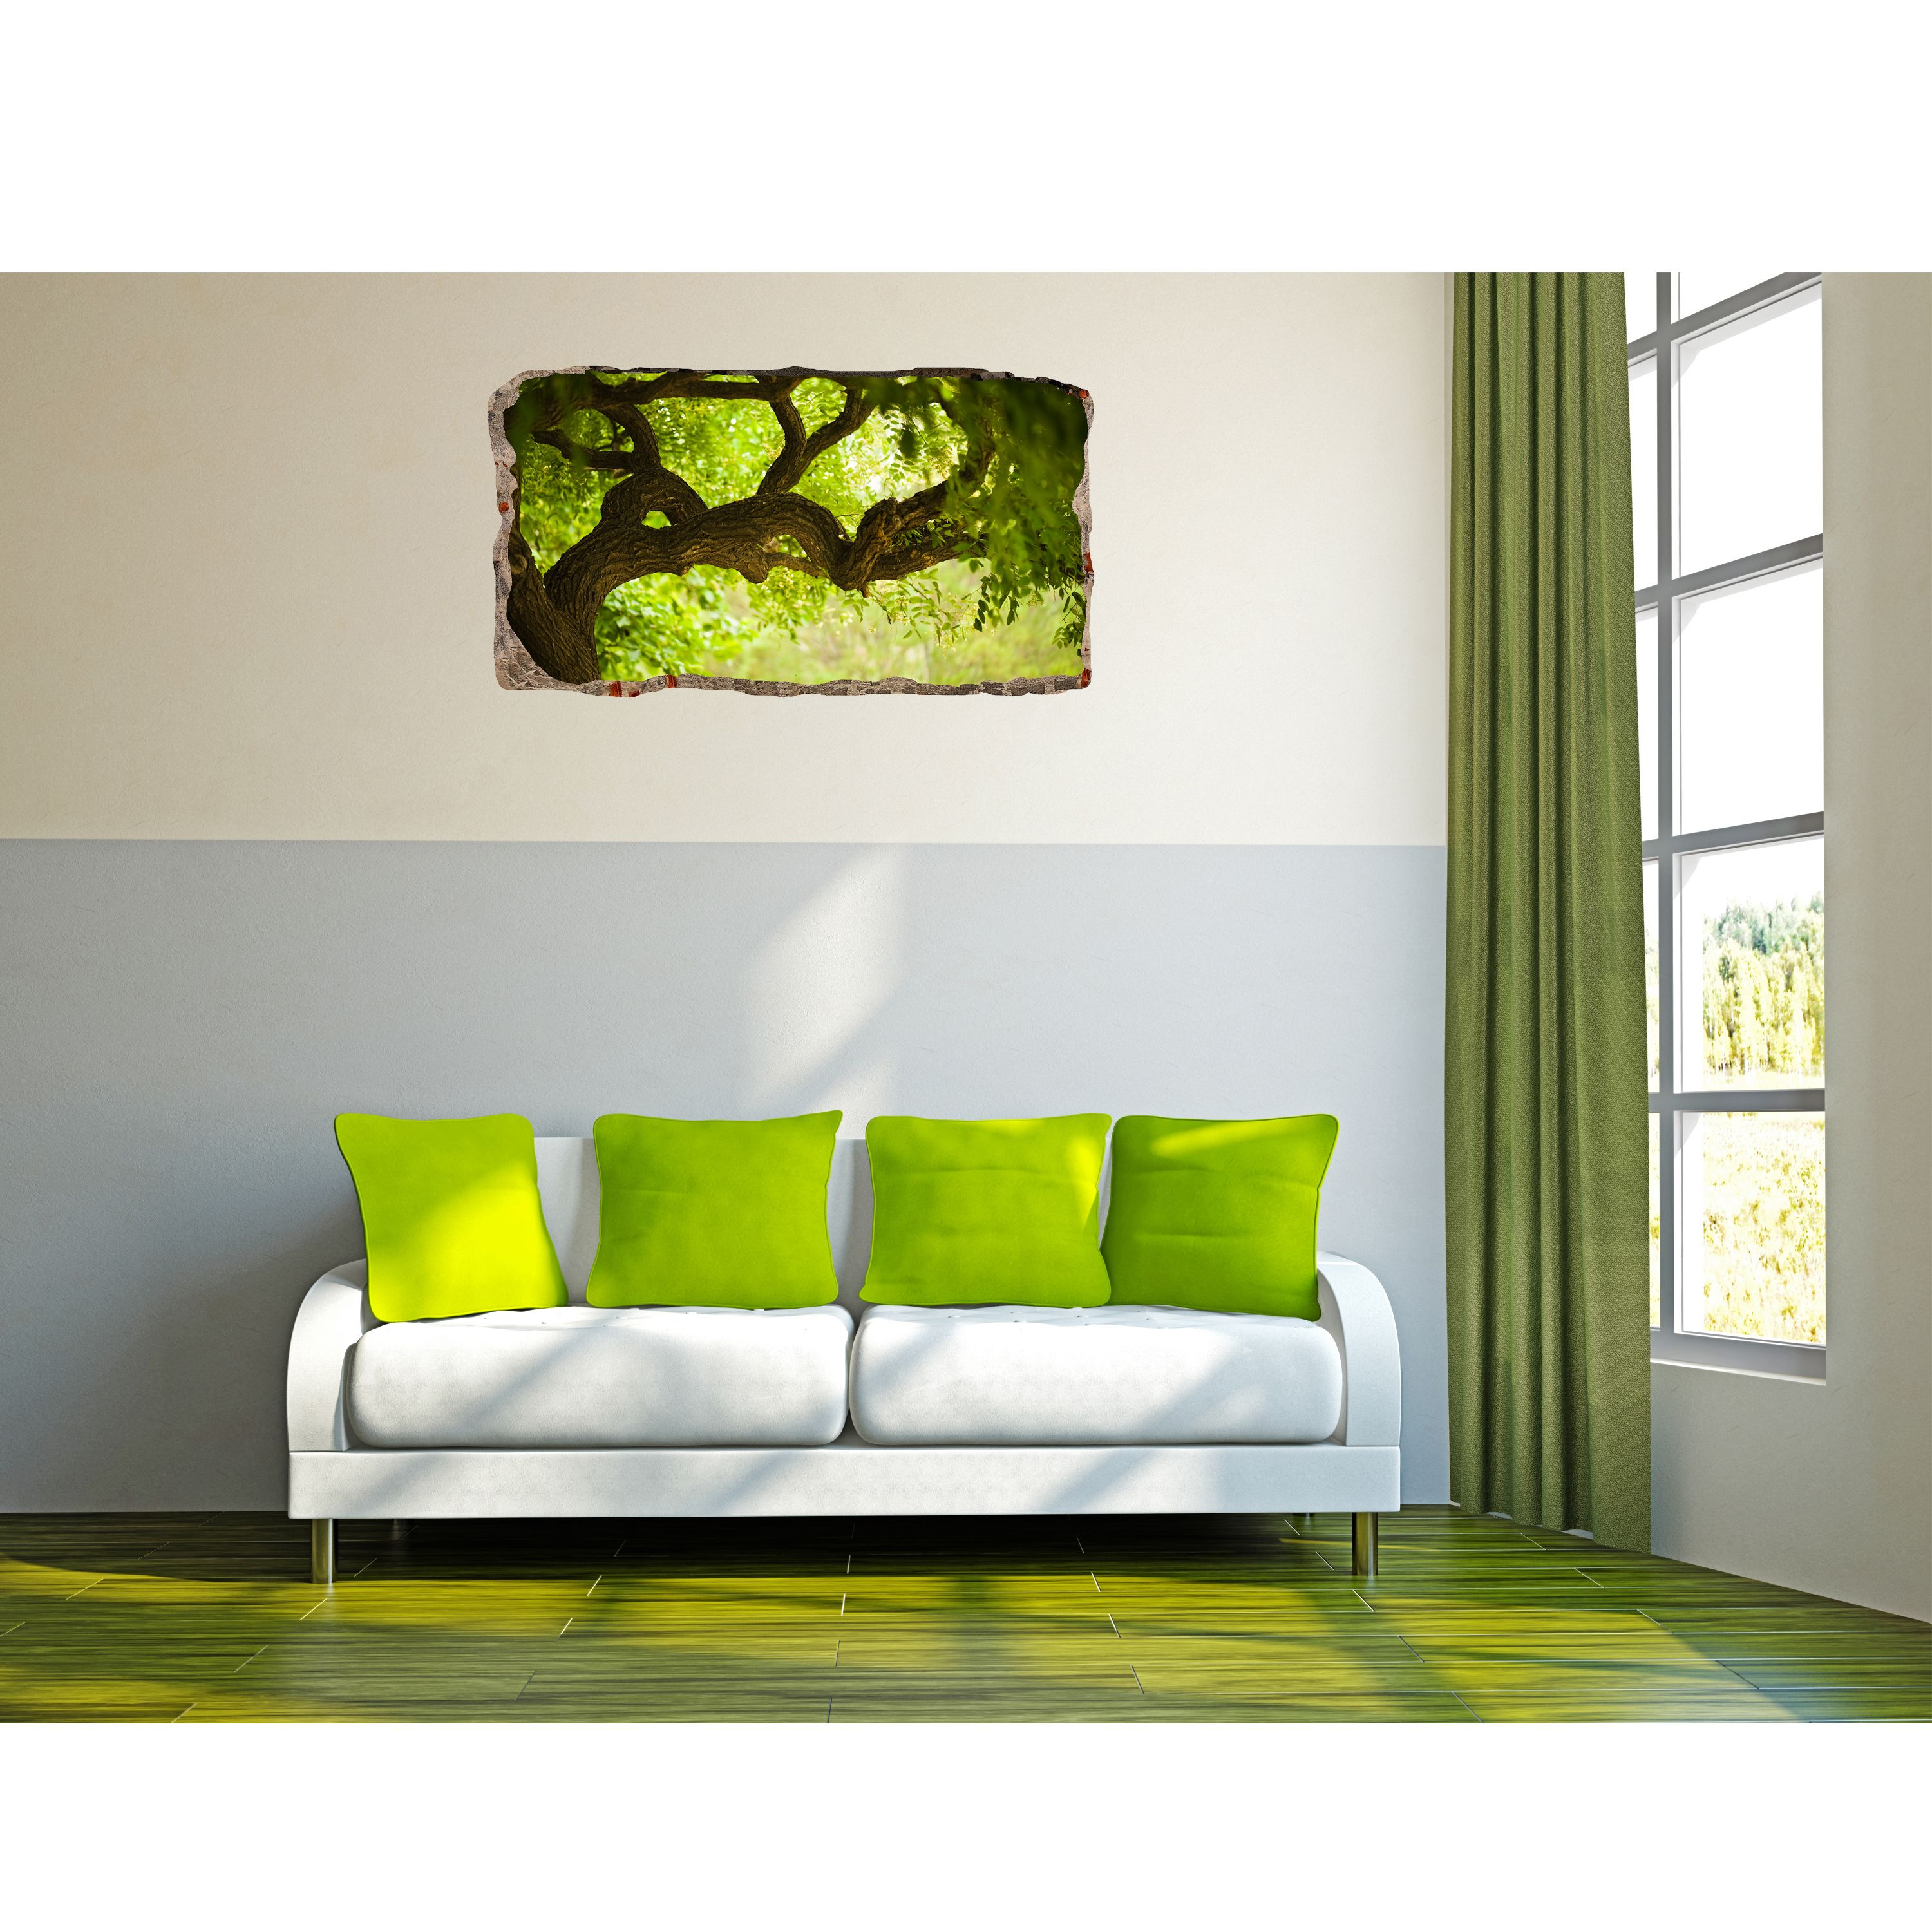 Startonight 3D Mural Wall Art Photo Decor Green Tree Amazing Dual View Surprise Medium Wall Mural Wallpaper for Bedroom Nature Collection Wall Paper Art 32.28 inch By 59.06 inch